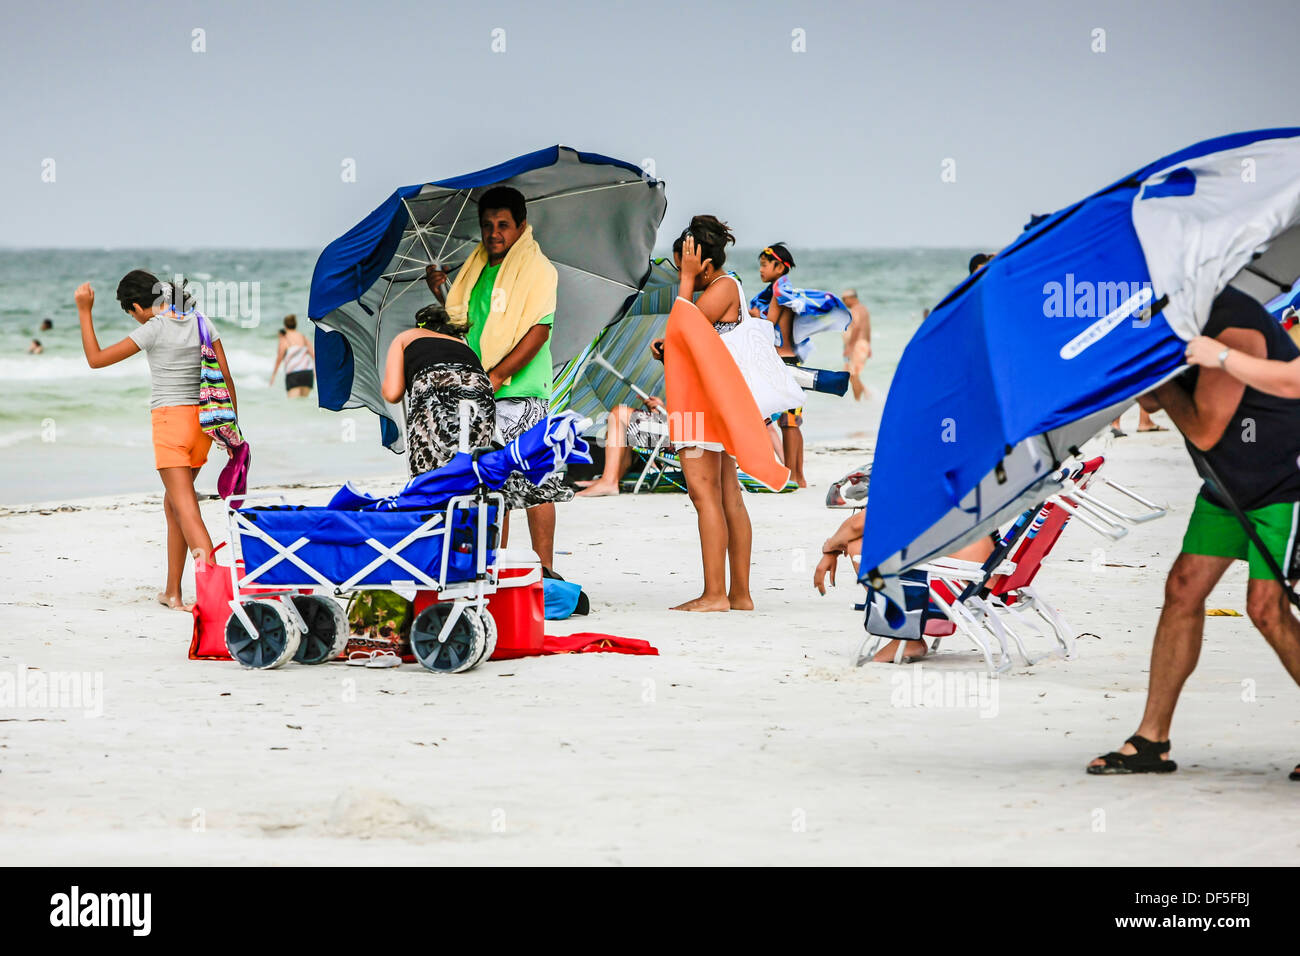 People trying to drop beach umbrellas during a wind storm on Siesta Key beach Florida - Stock Image